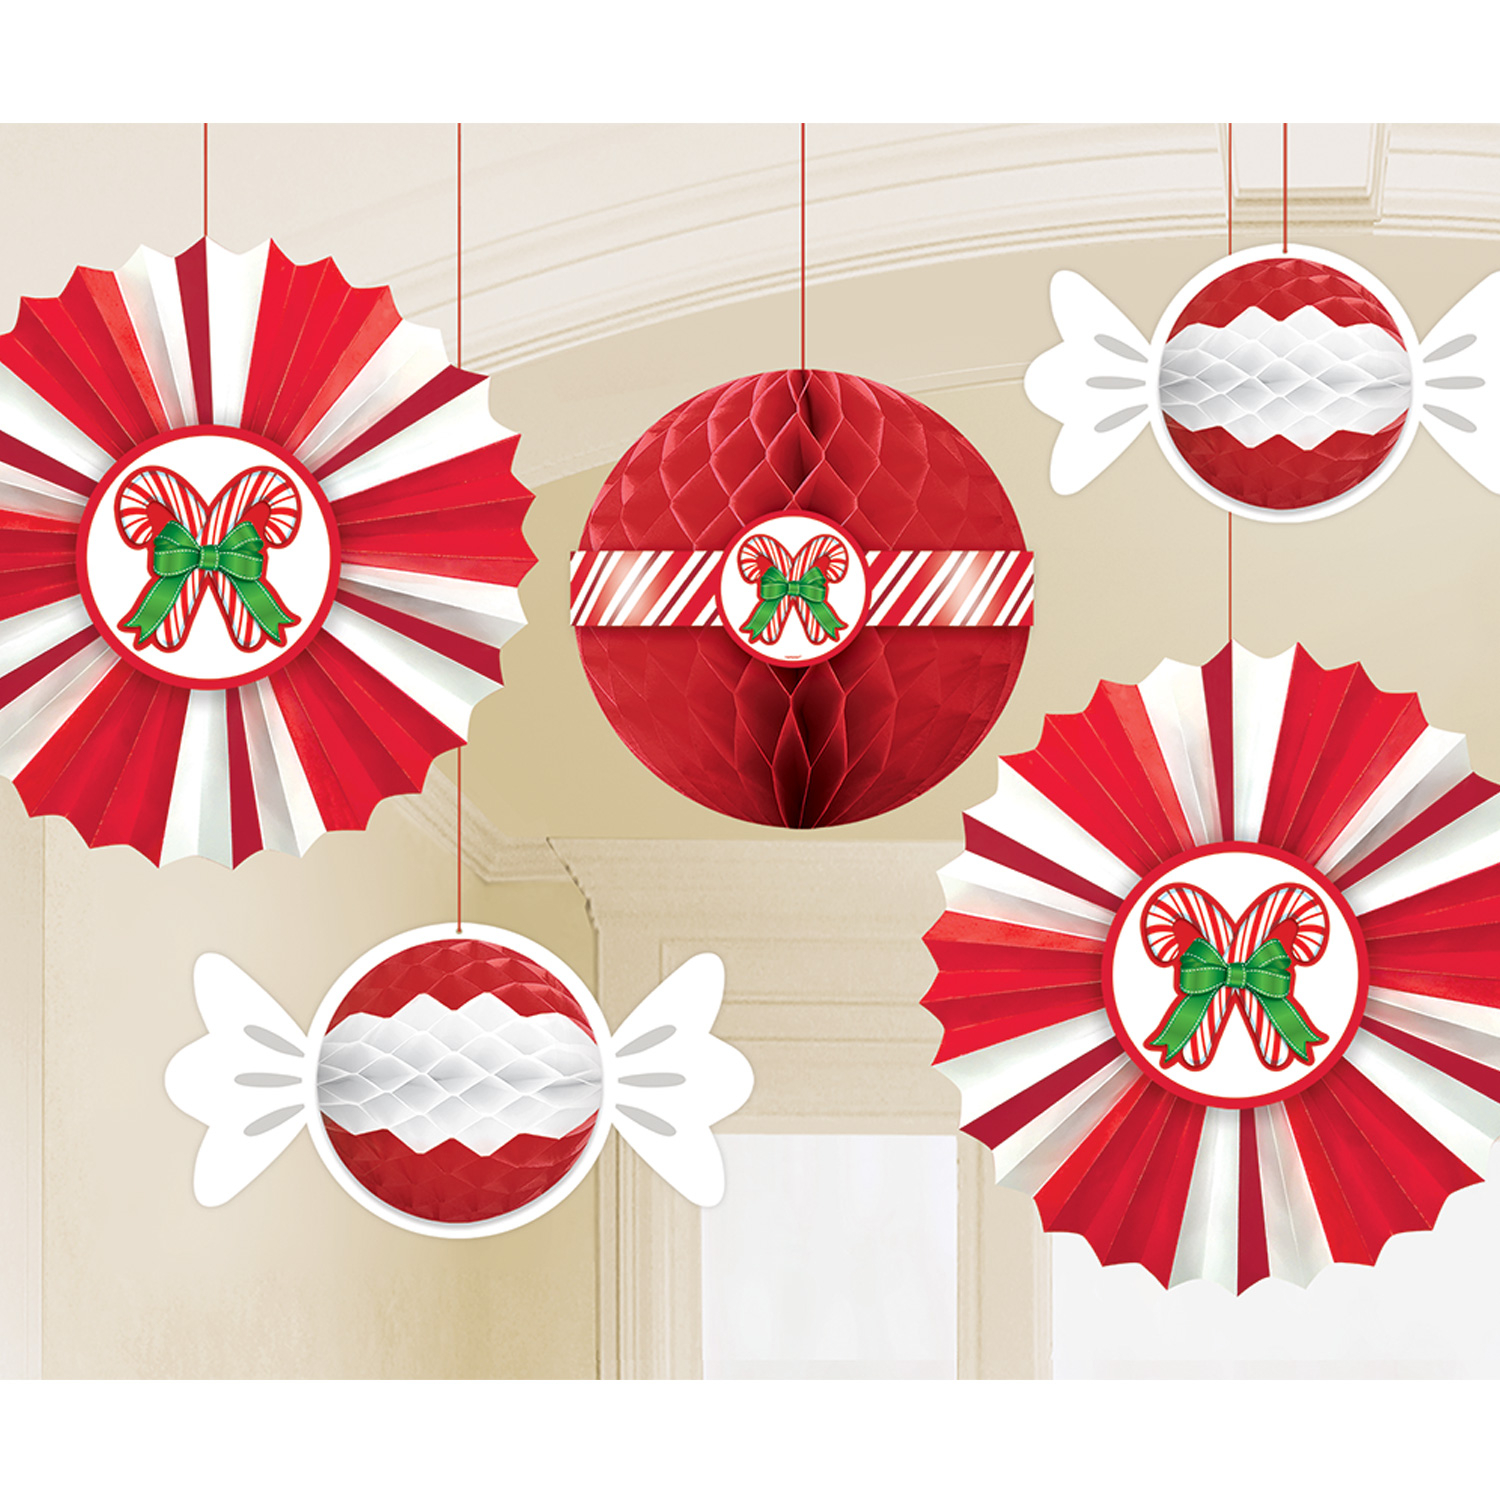 Christmas Candy Decorations.Details About 5 X Christmas Candy Cane Stripe Honeycomb 3d Hanging Party Decorations Fans